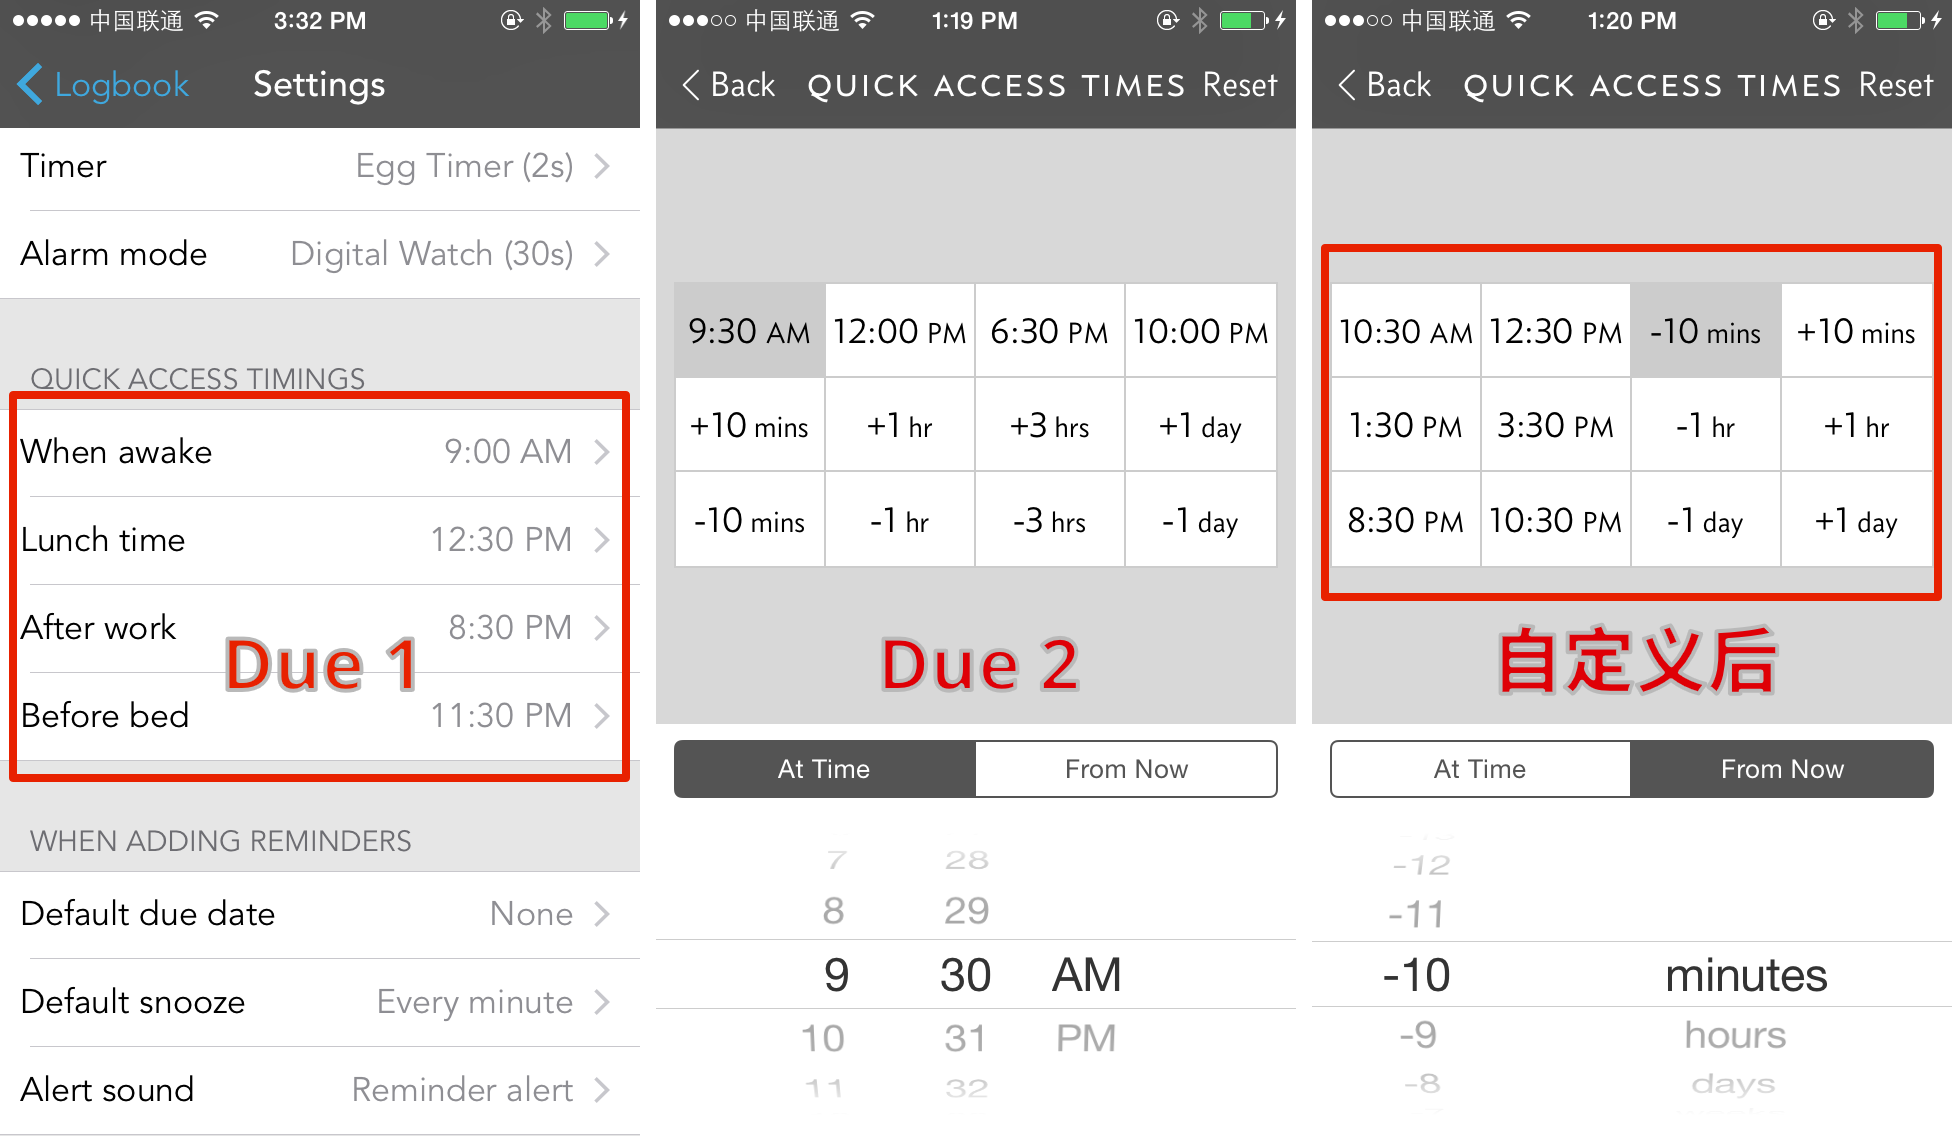 Quick Access Times